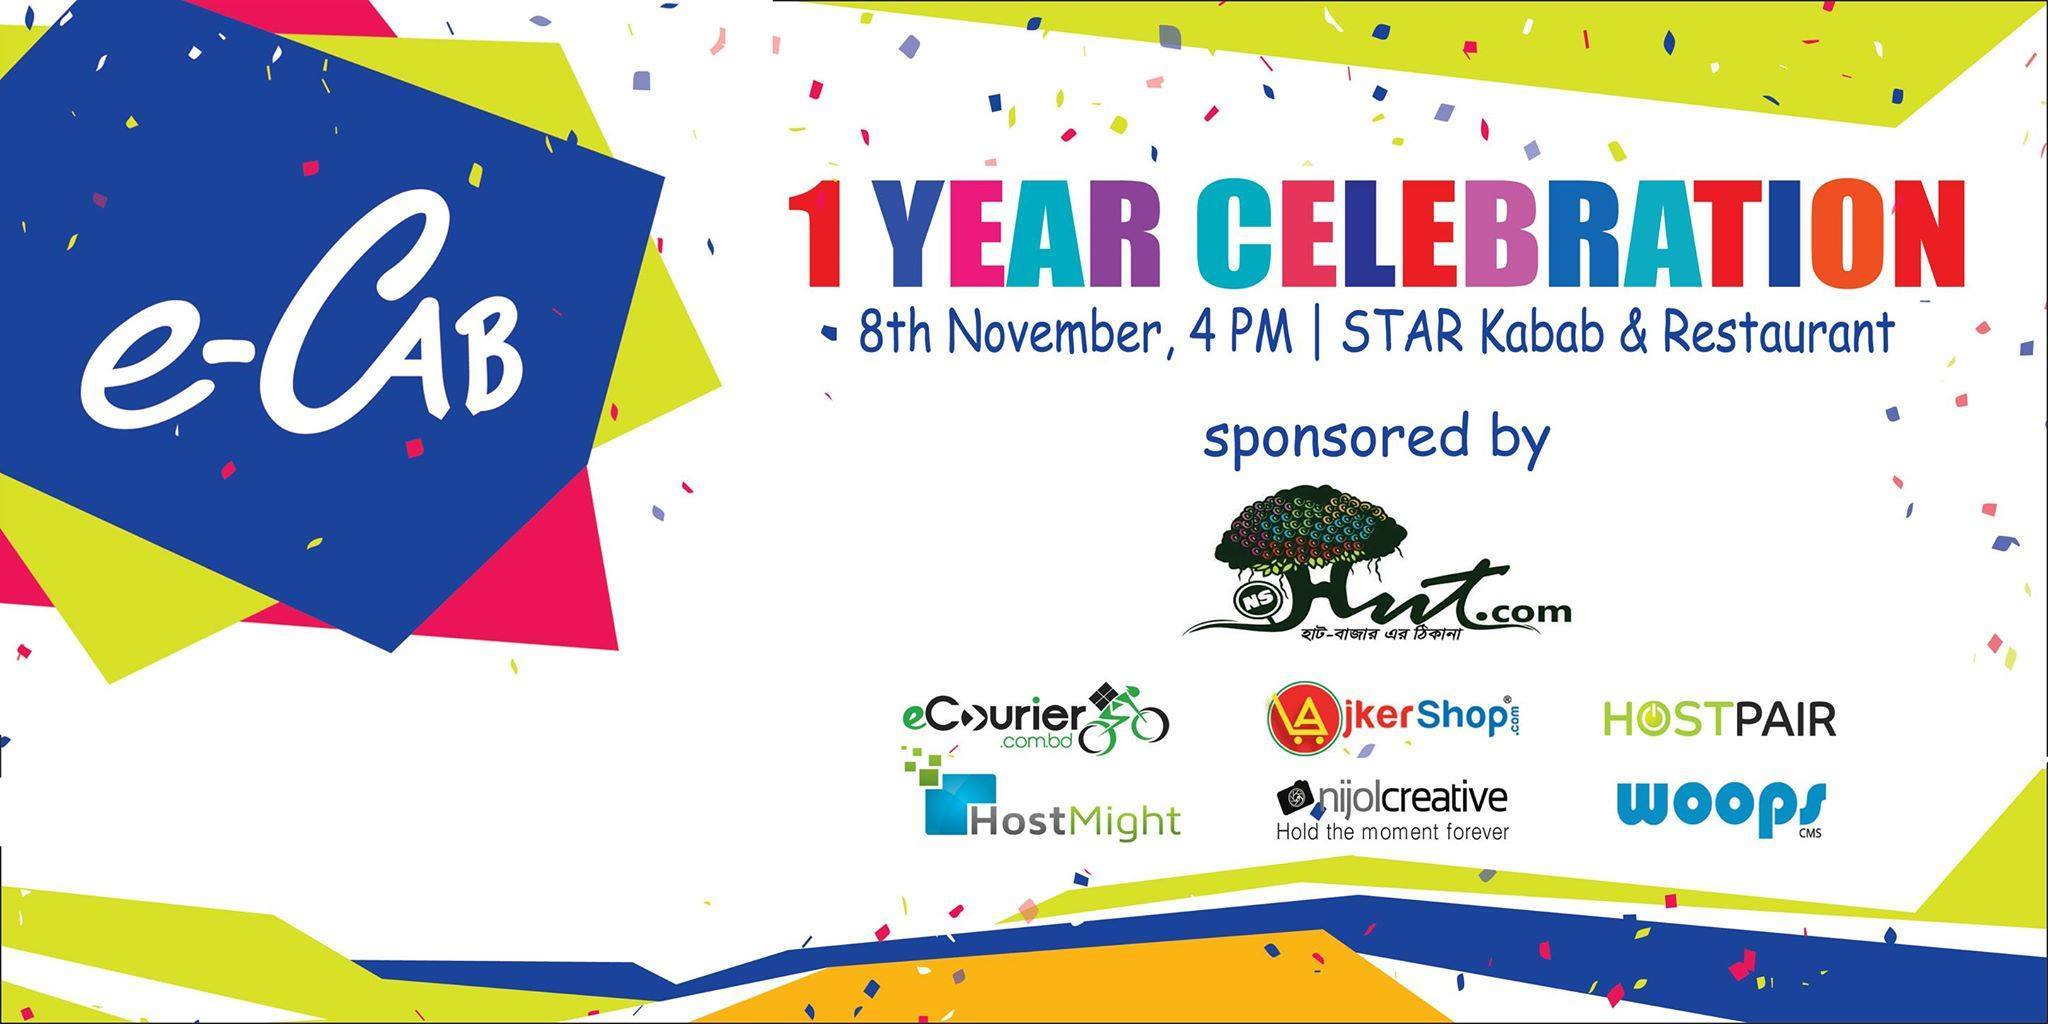 Hostmight.Com is proud to be a sponsor of e-CAB  1 year celebration program